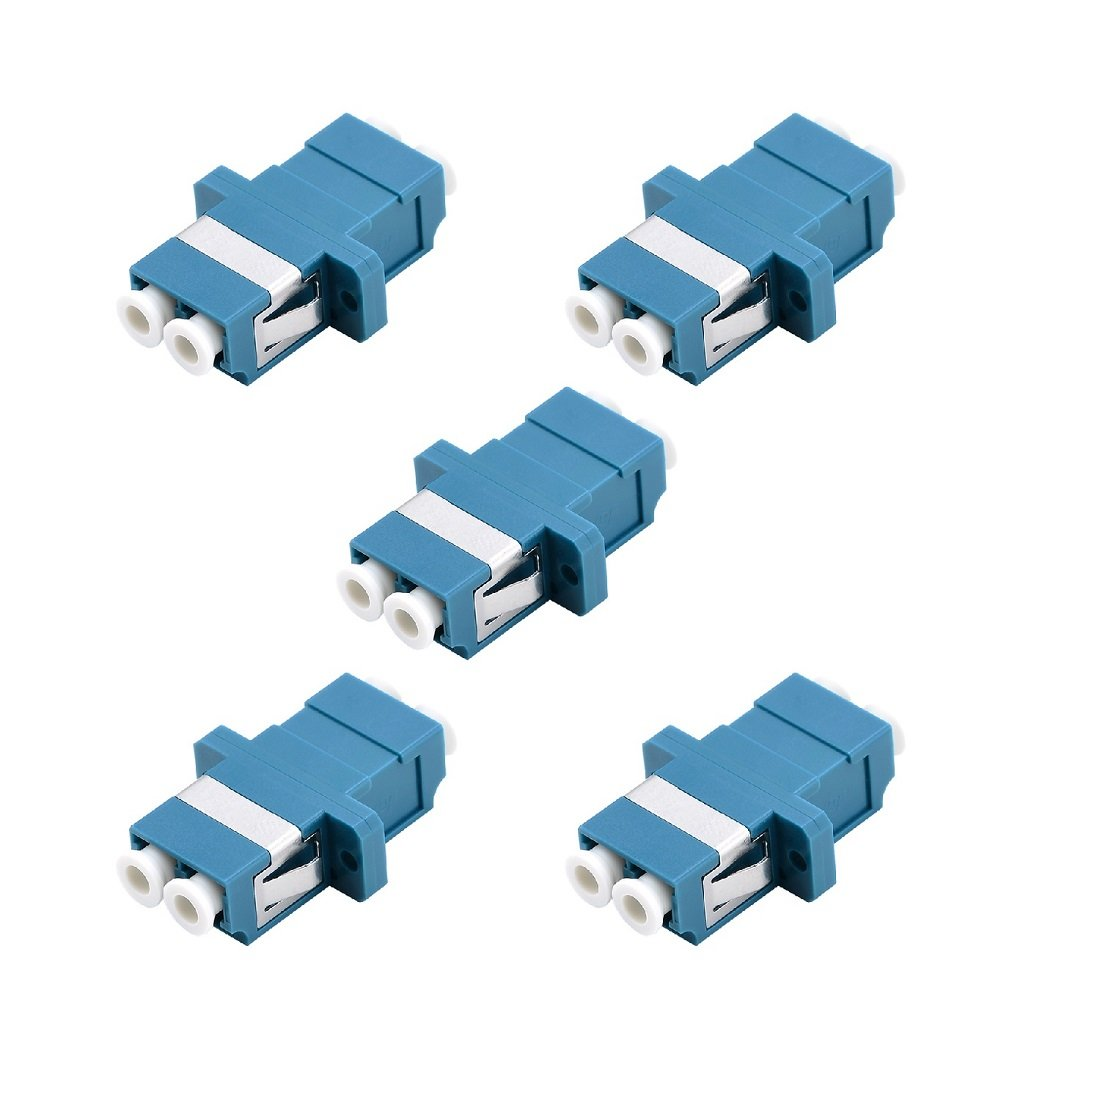 LC Fiber Optic Adapter - Comm Cable LC to LC Duplex Singlemode Coupler - 5 Pack - Blue by Comm Cable